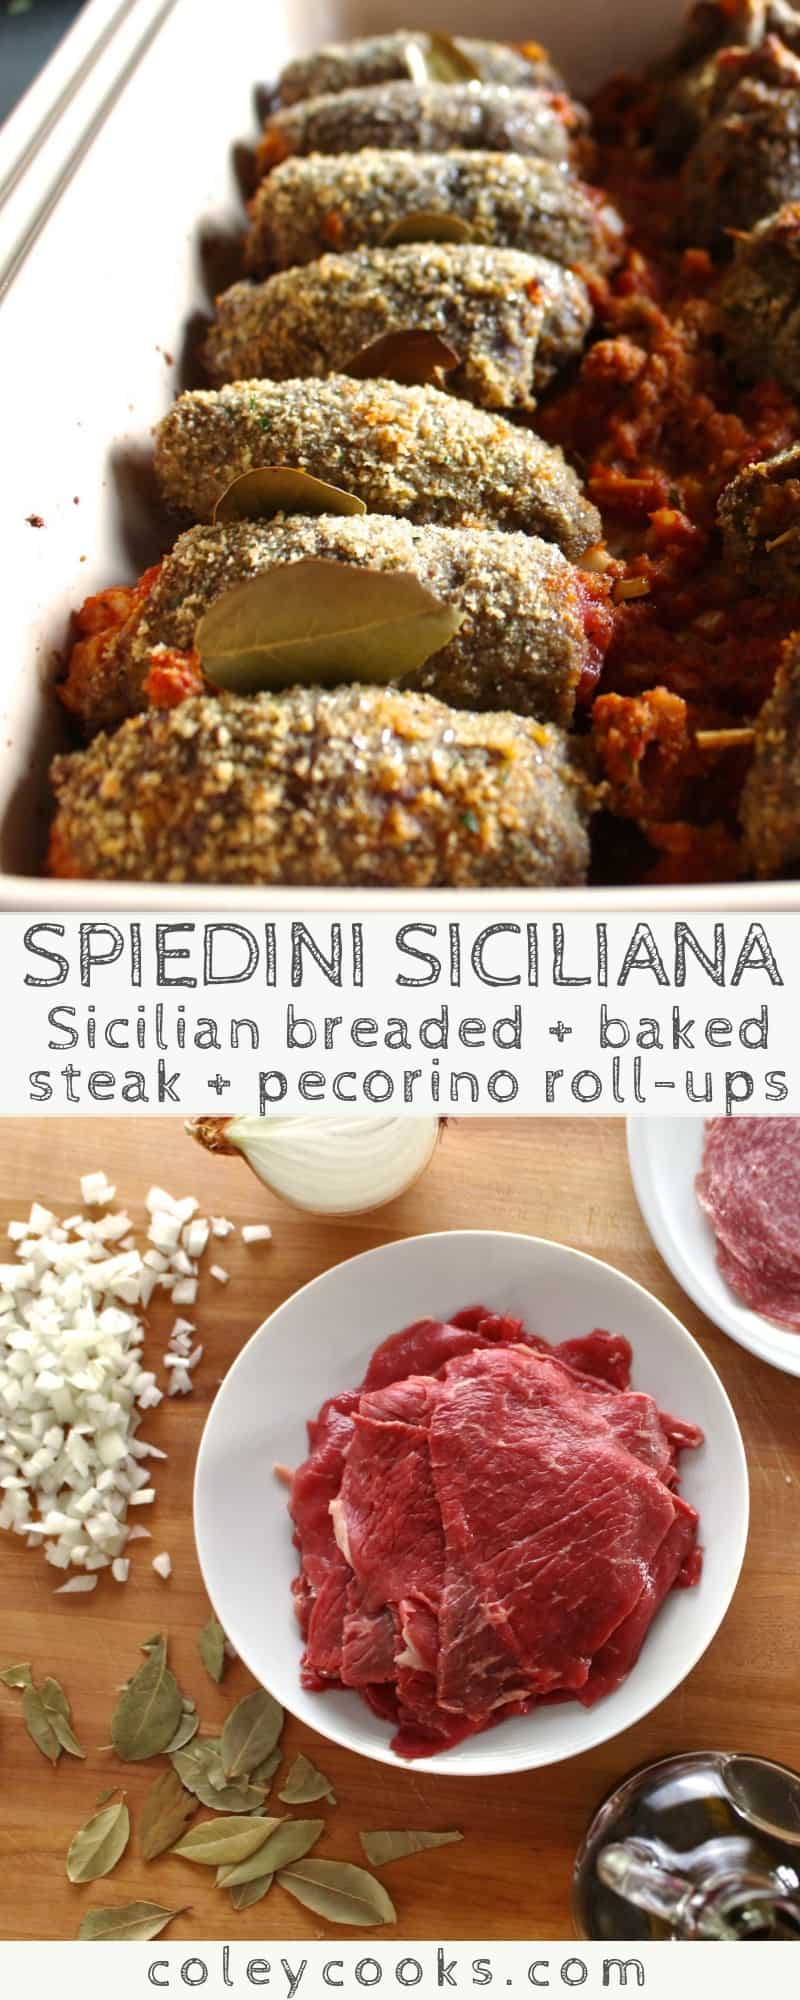 Spiedini Siciliana | My family's authentic Sicilian recipe for spiedini. Thinly sliced beef, breaded + stuffed with tomatoes, cheese and onions. Great holiday recipe! #easy #christmas #recipe #appetizer #holidays #beef #Sicilian | ColeyCooks.com